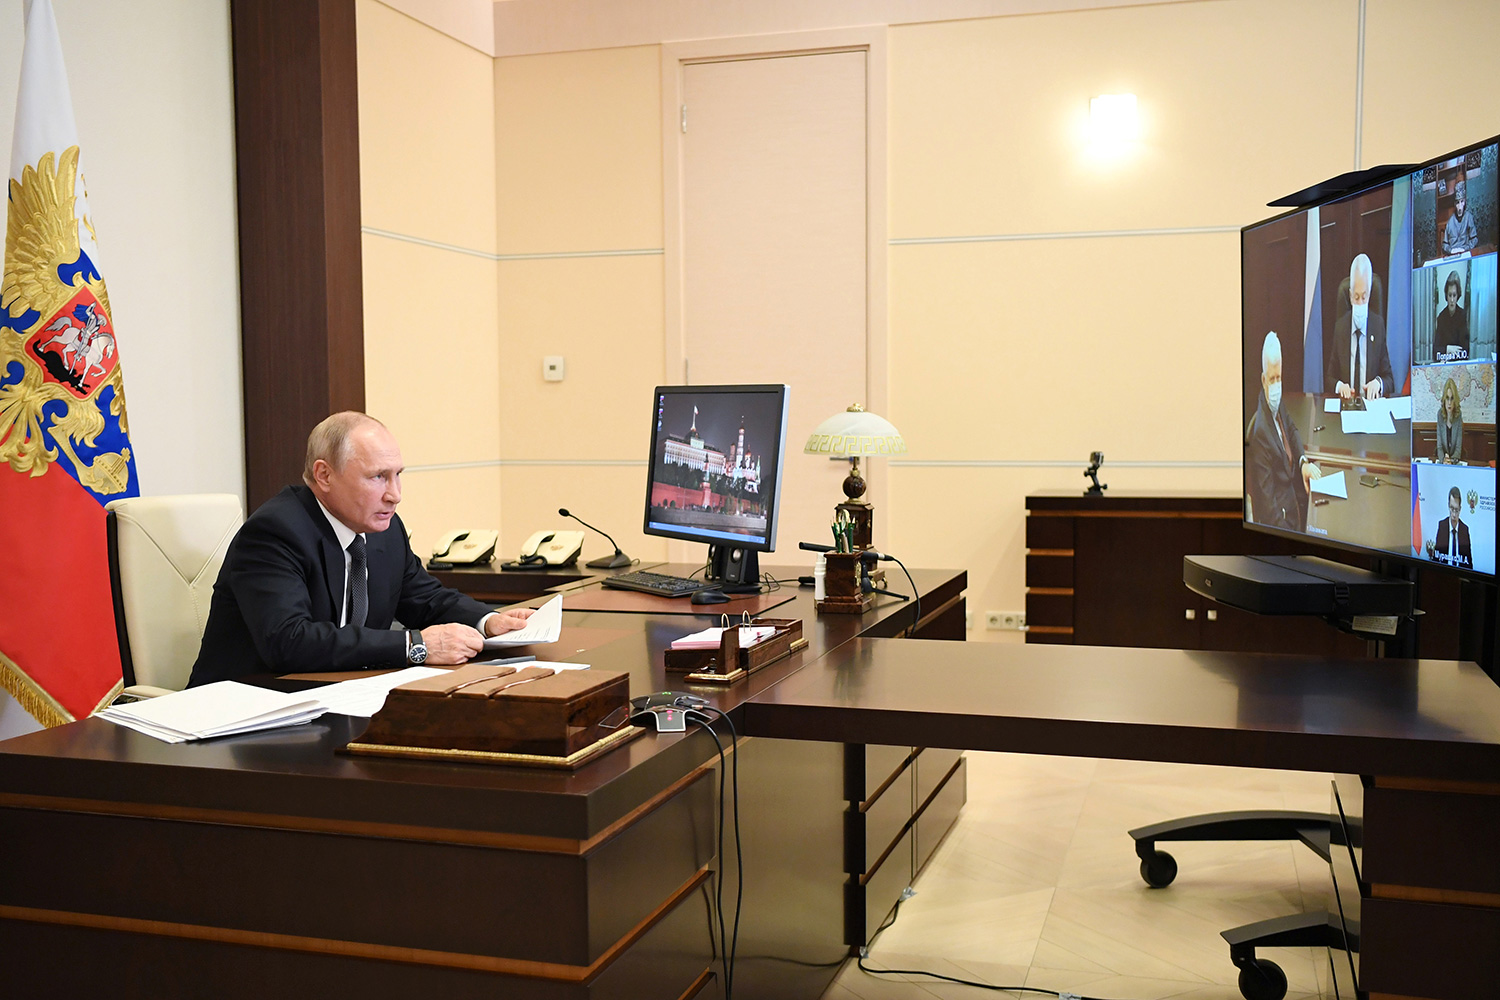 The image shows Putin at a desk across from a large screen on which others can be seen conferenced in.